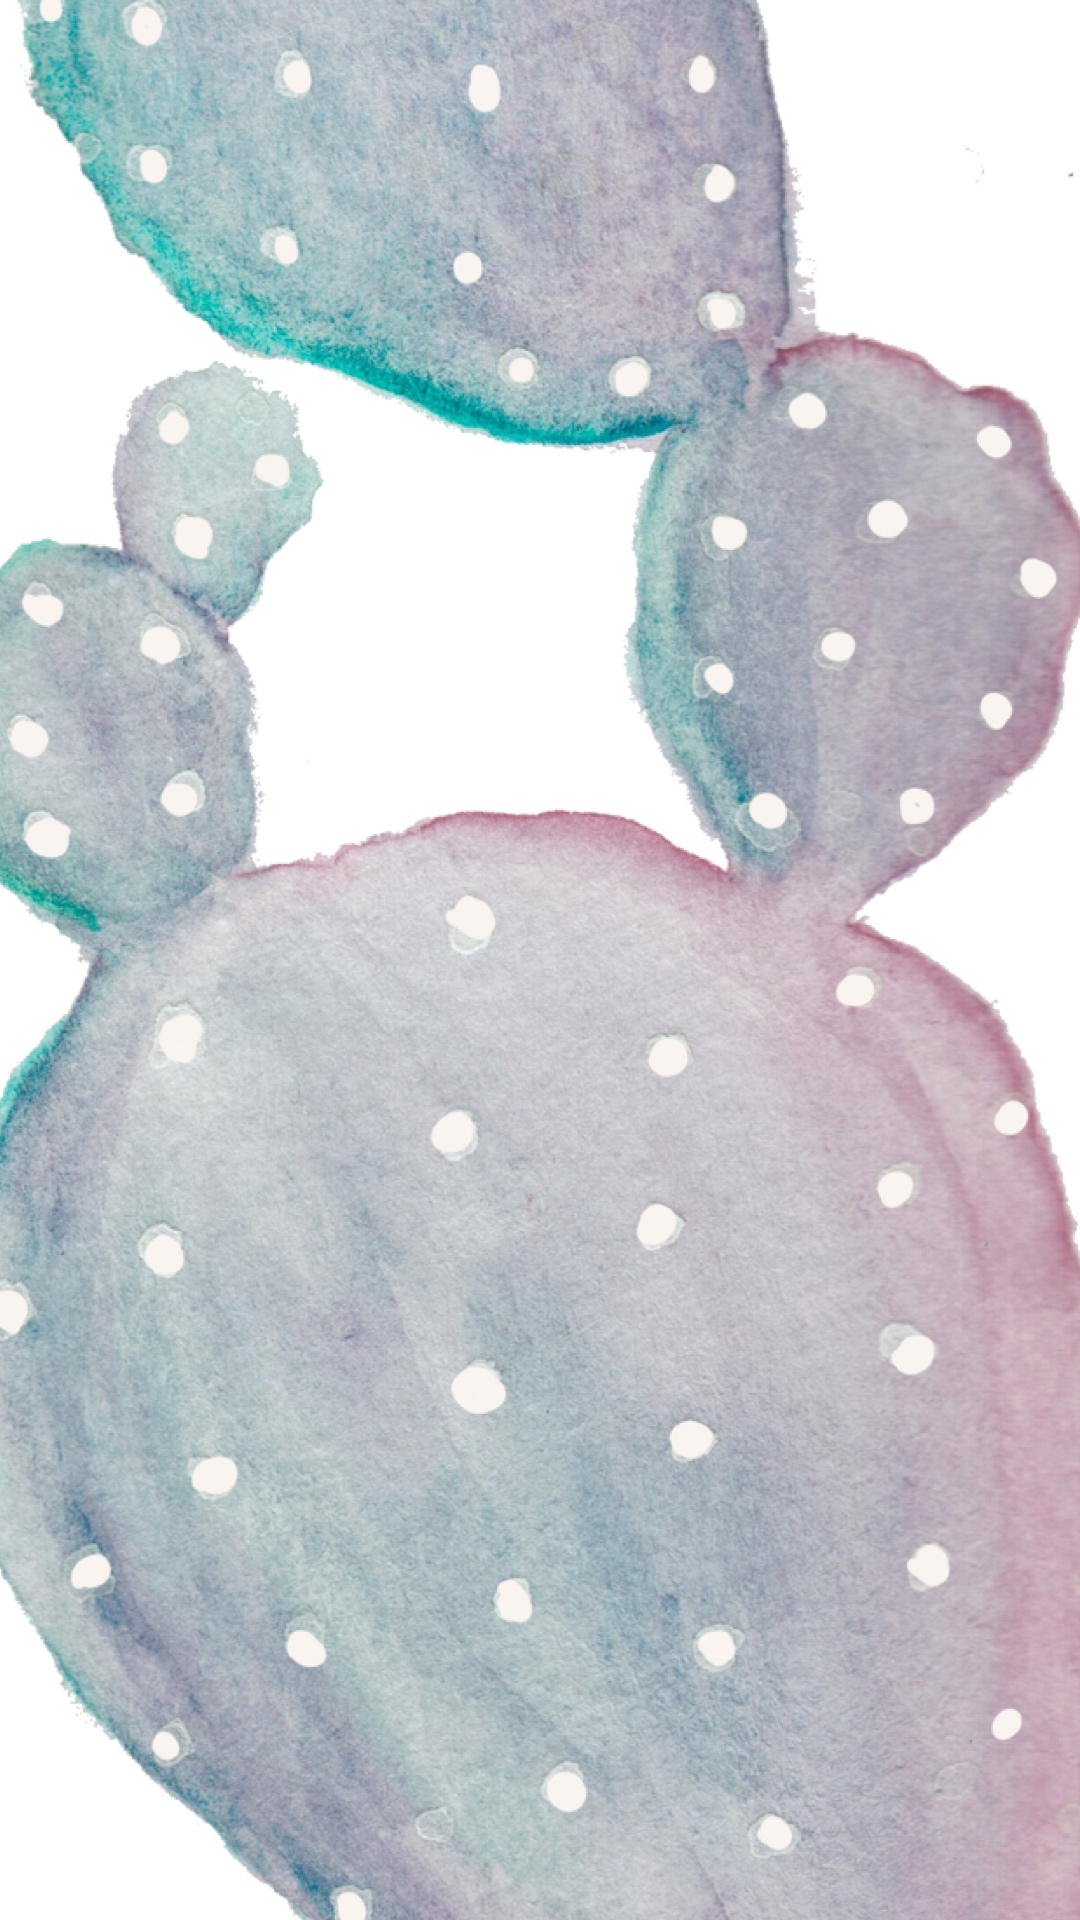 phone wallpaper watercolor cactus